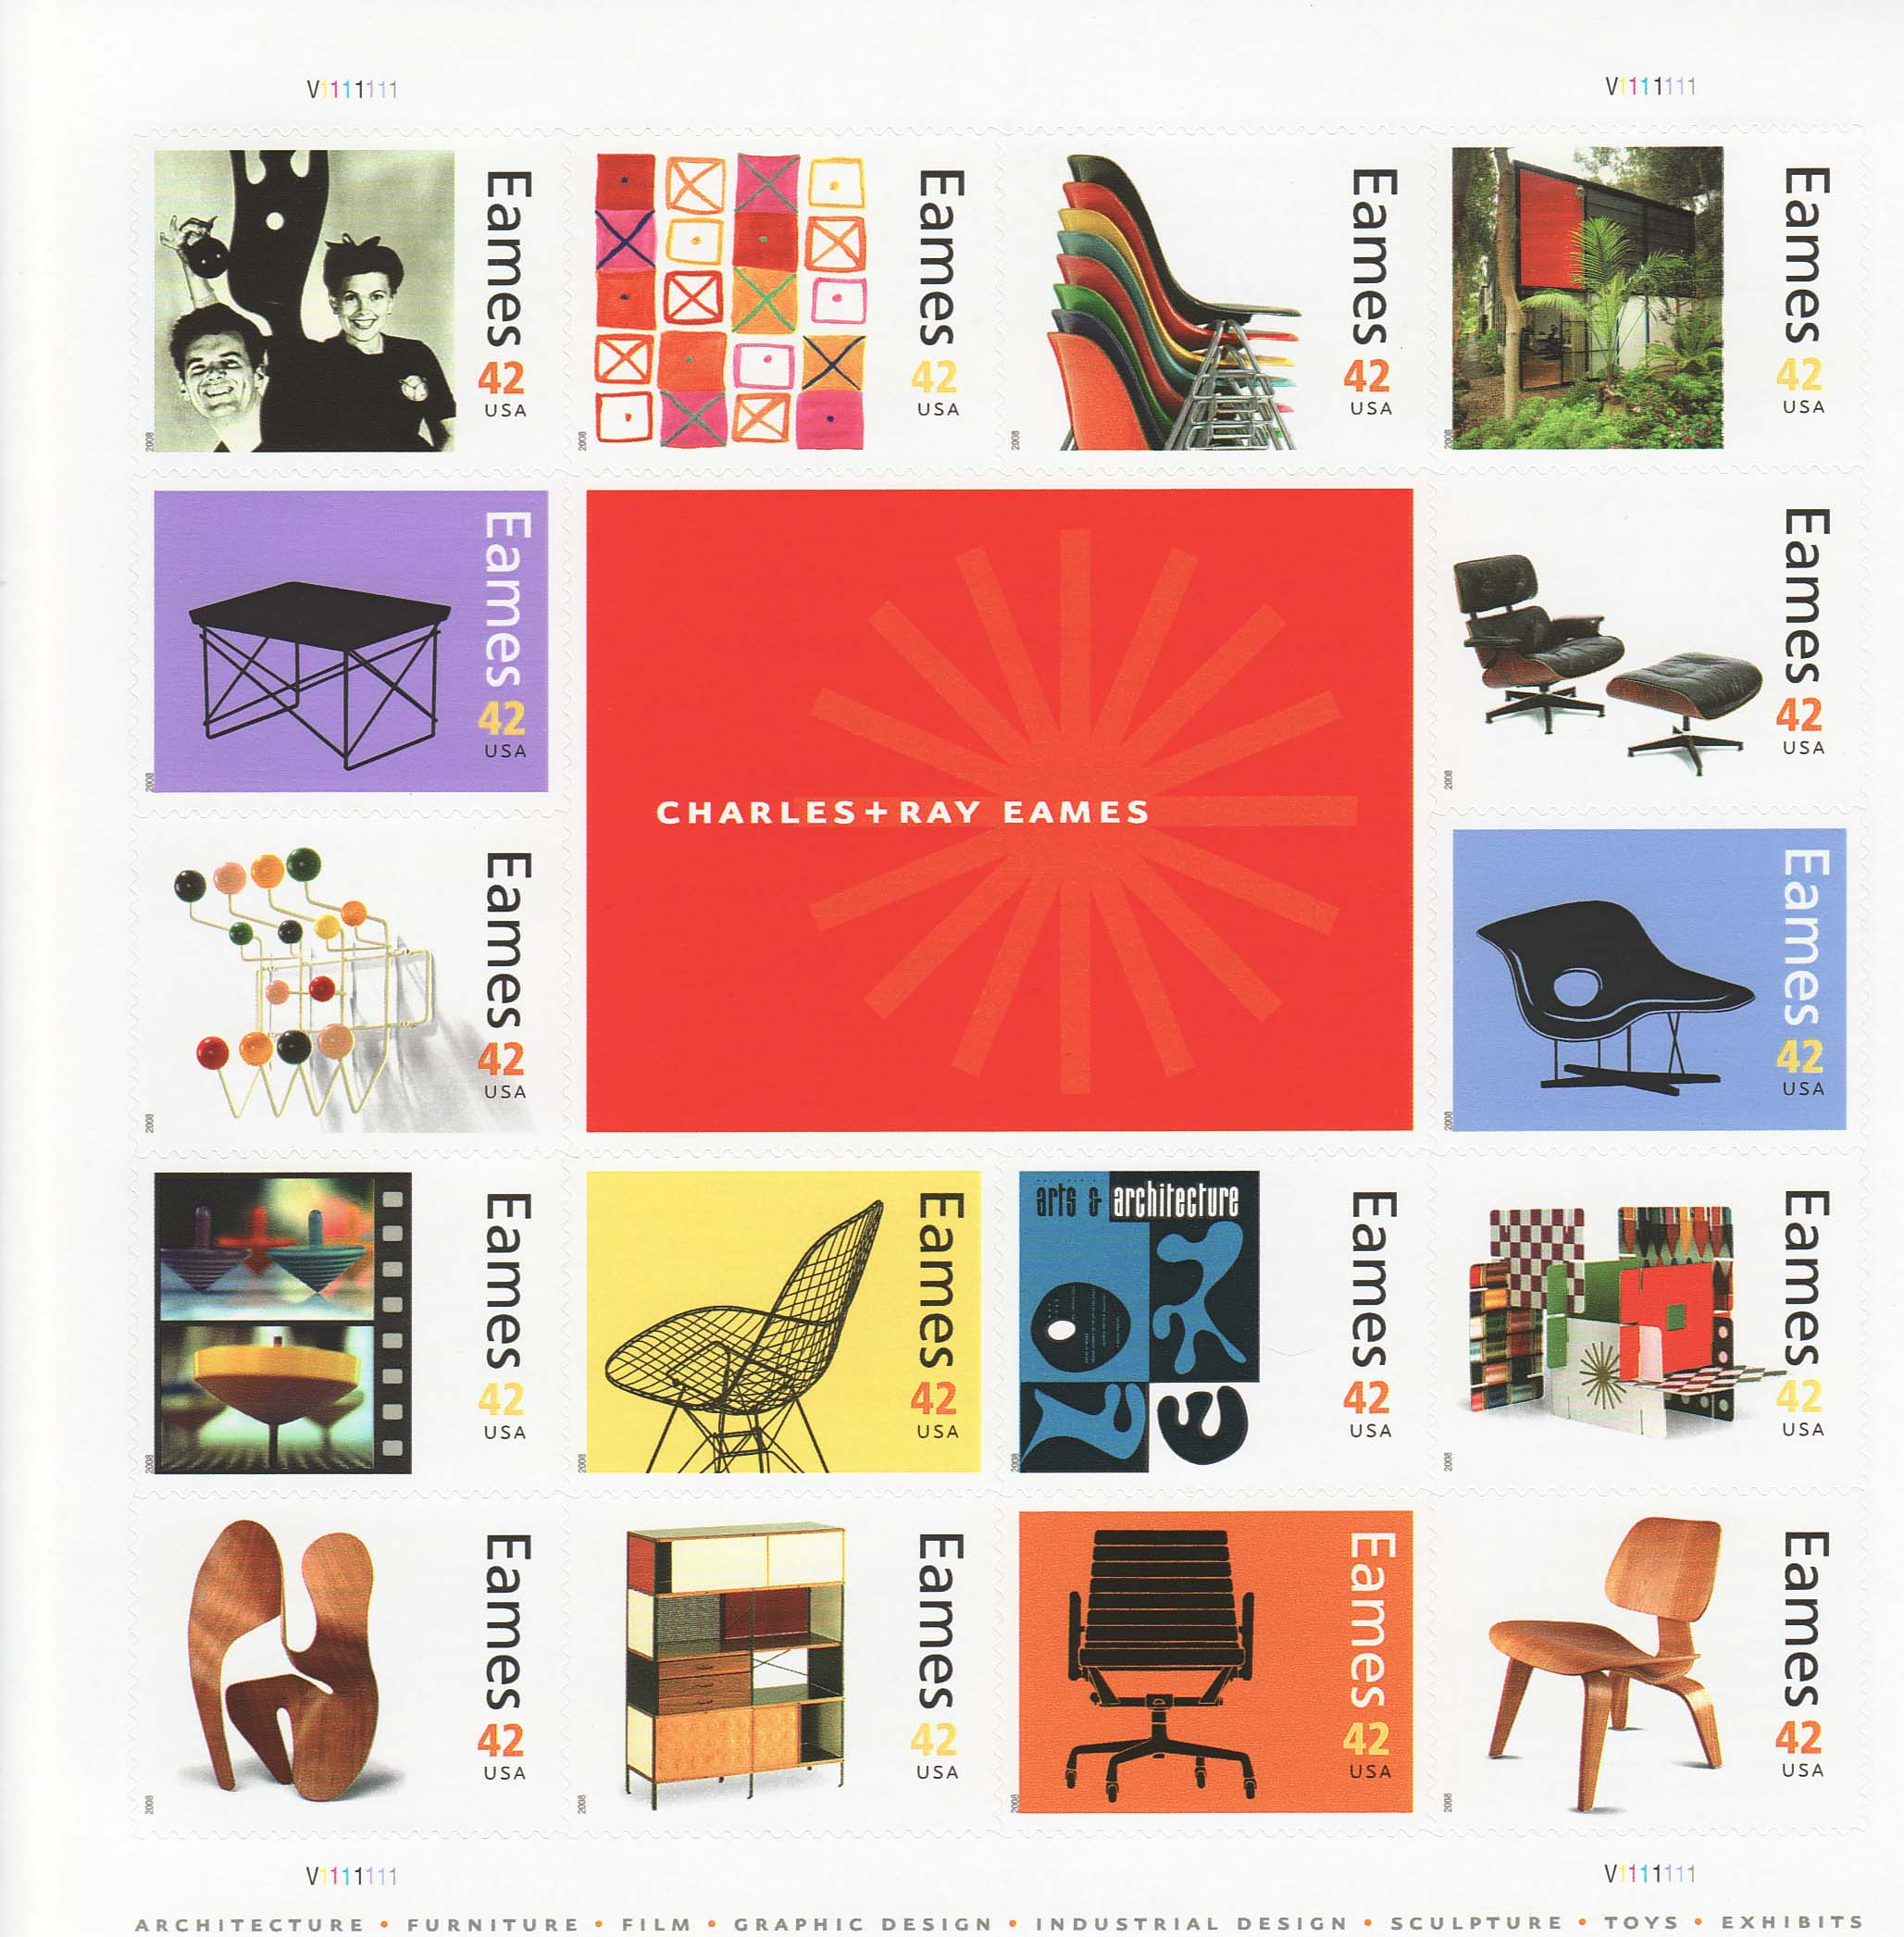 Charles & Ray Eames stamp sheet -- Art, #4333